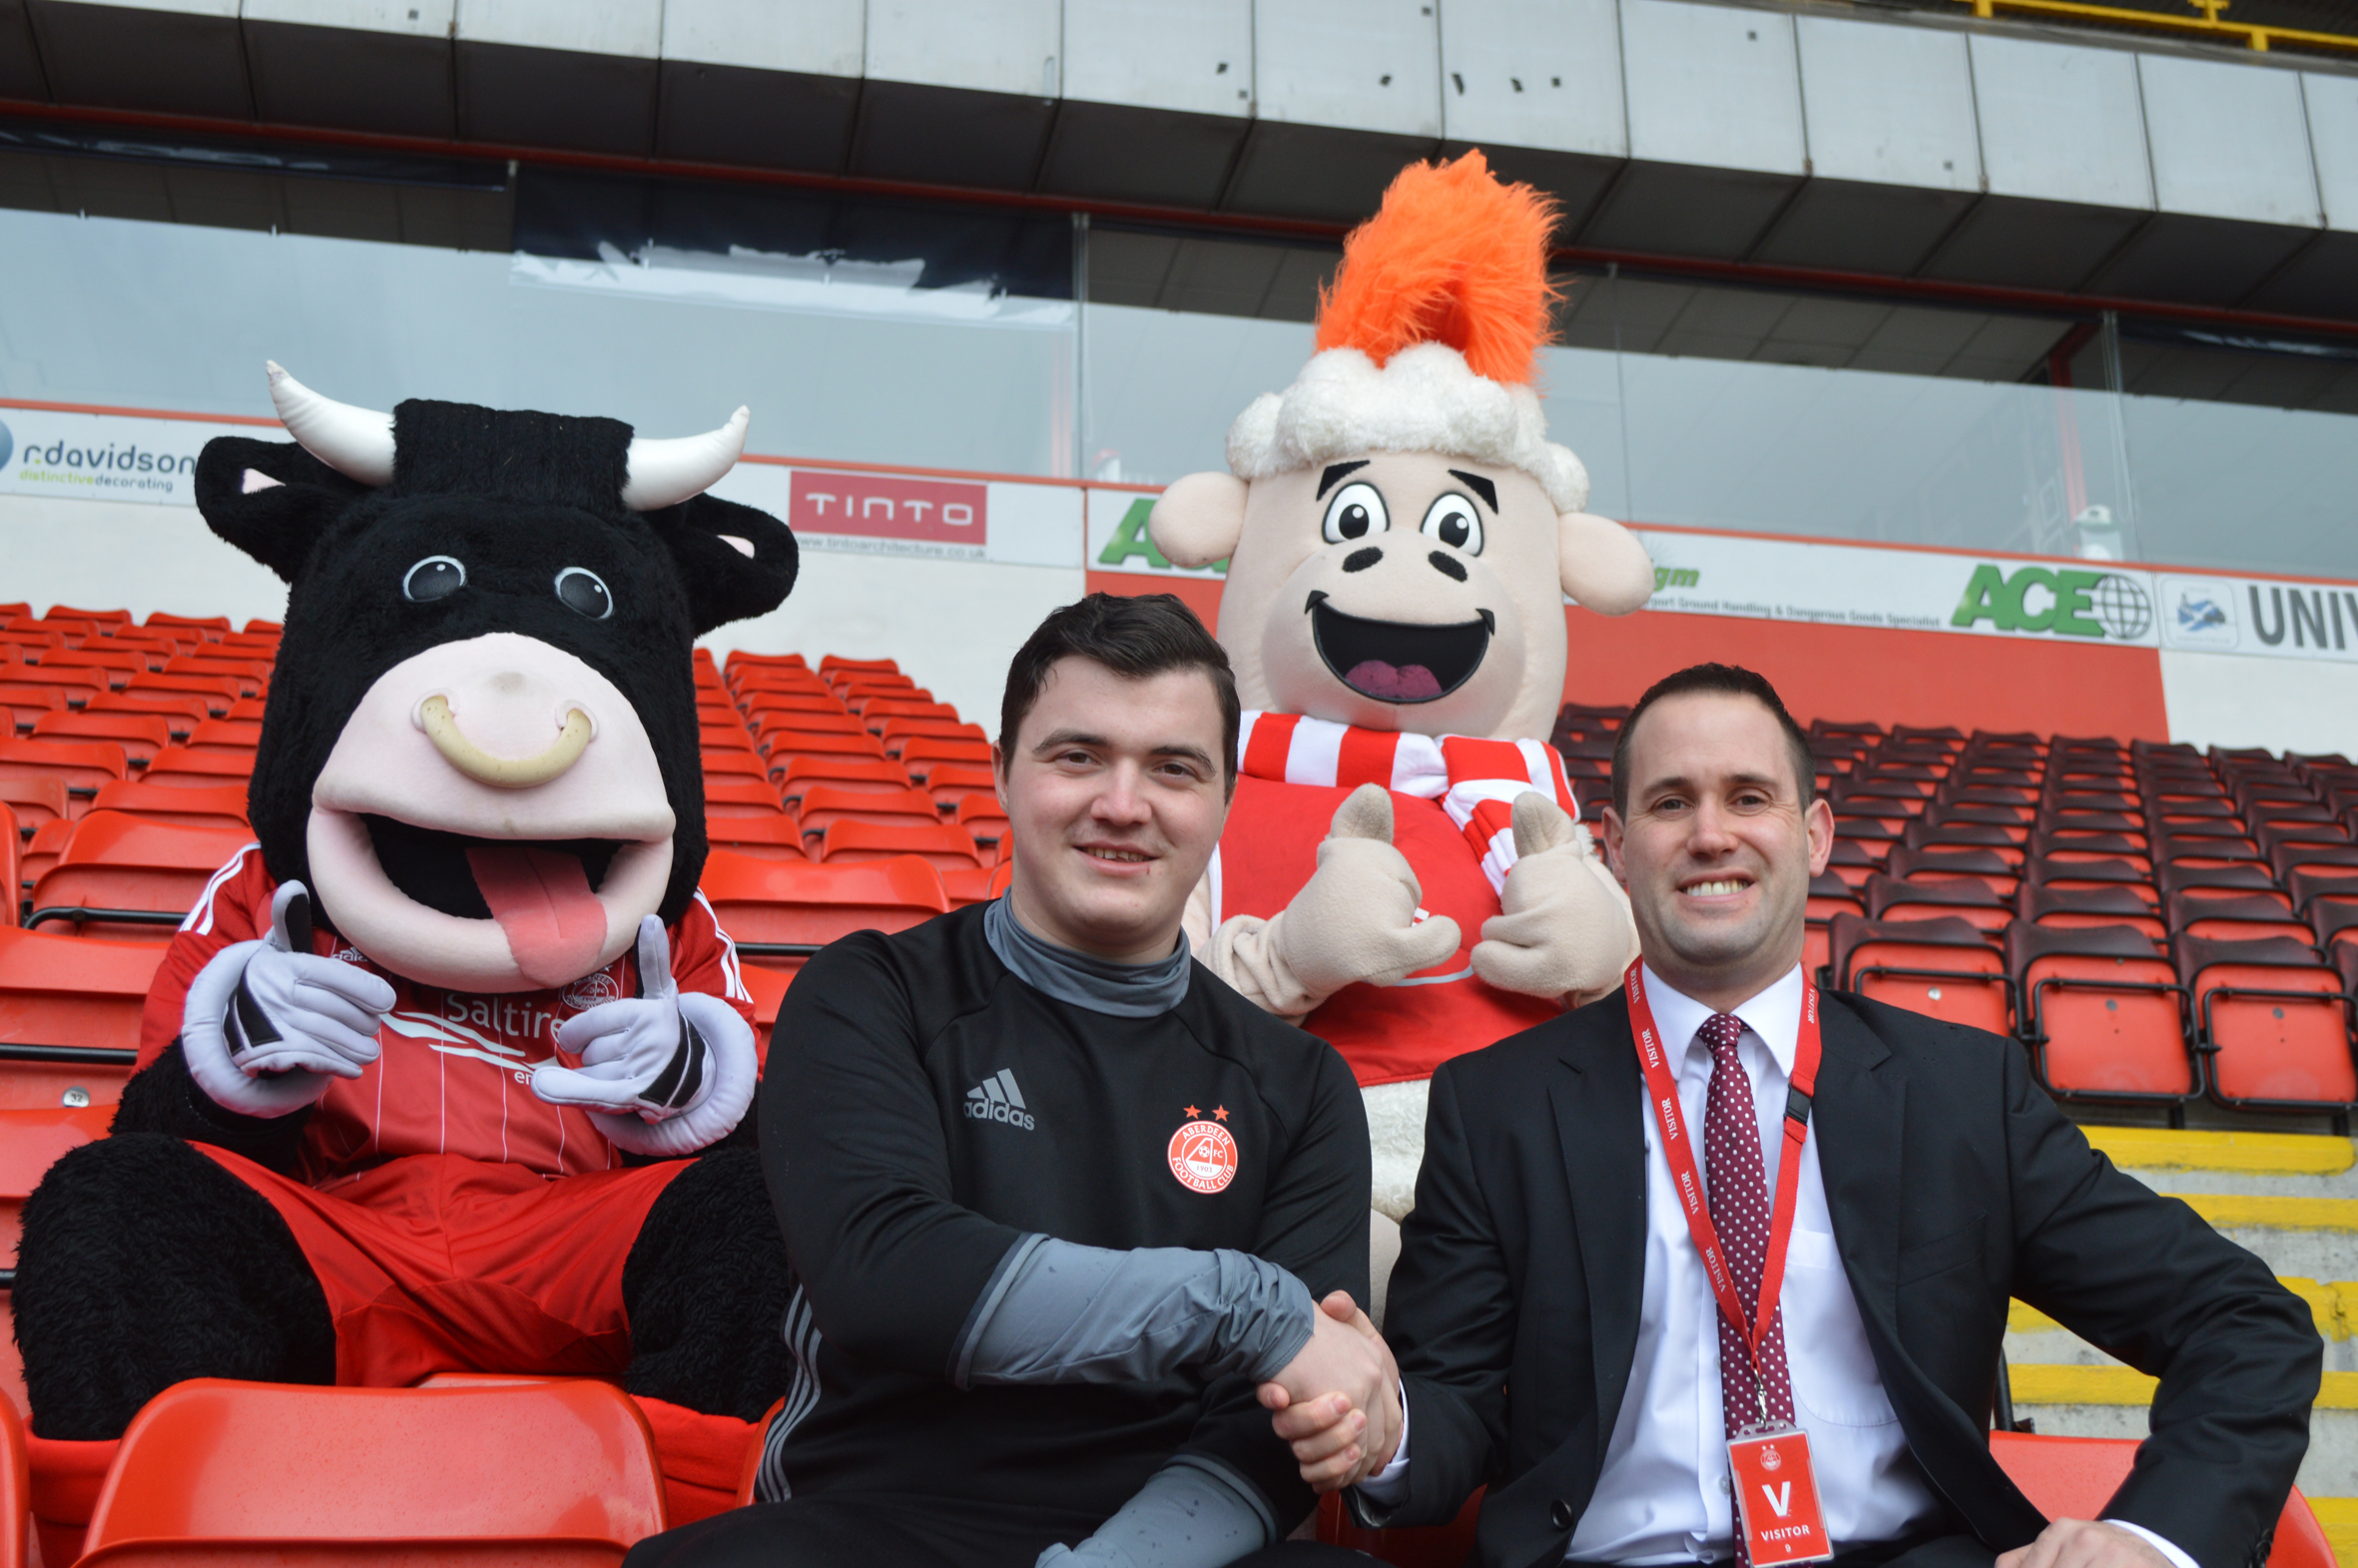 Russell Aitchison, right, with  Dean McBain of AFC and club mascots.